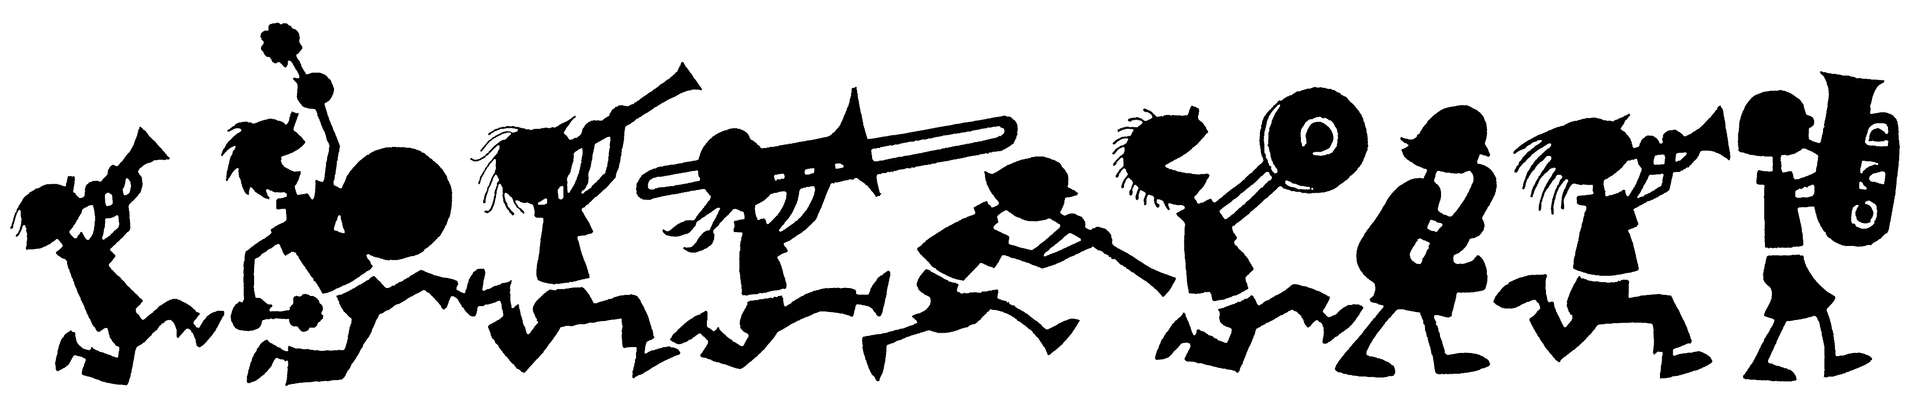 Jazz Band clipart